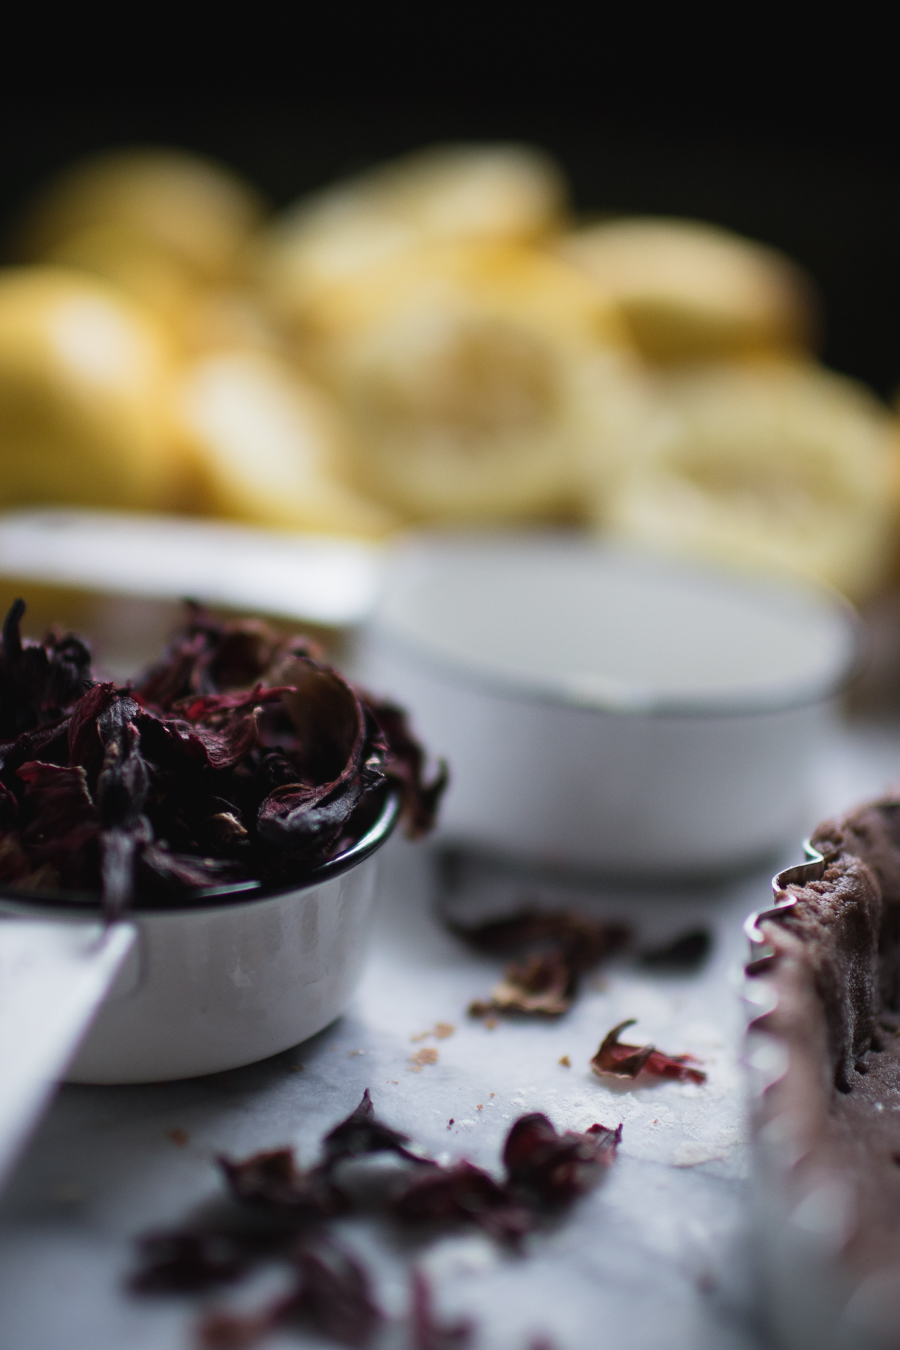 dried hibiscus meant for lemon tart